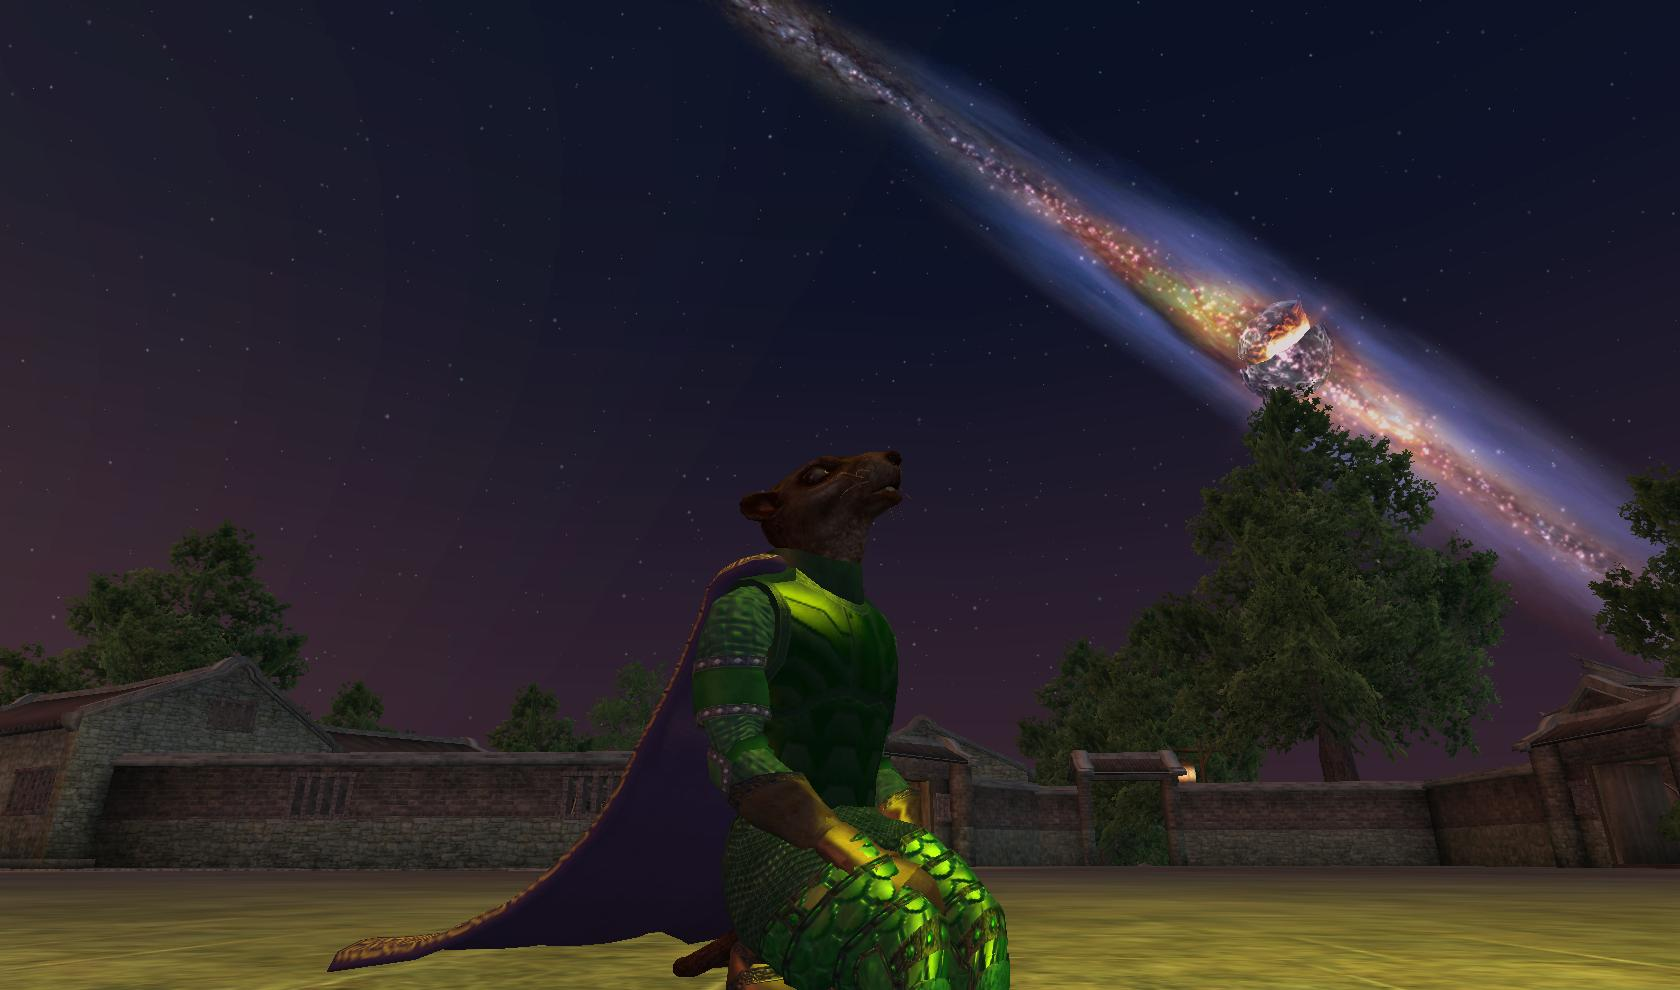 Maltheas rests, on the Isle of Mara in Everquest 2